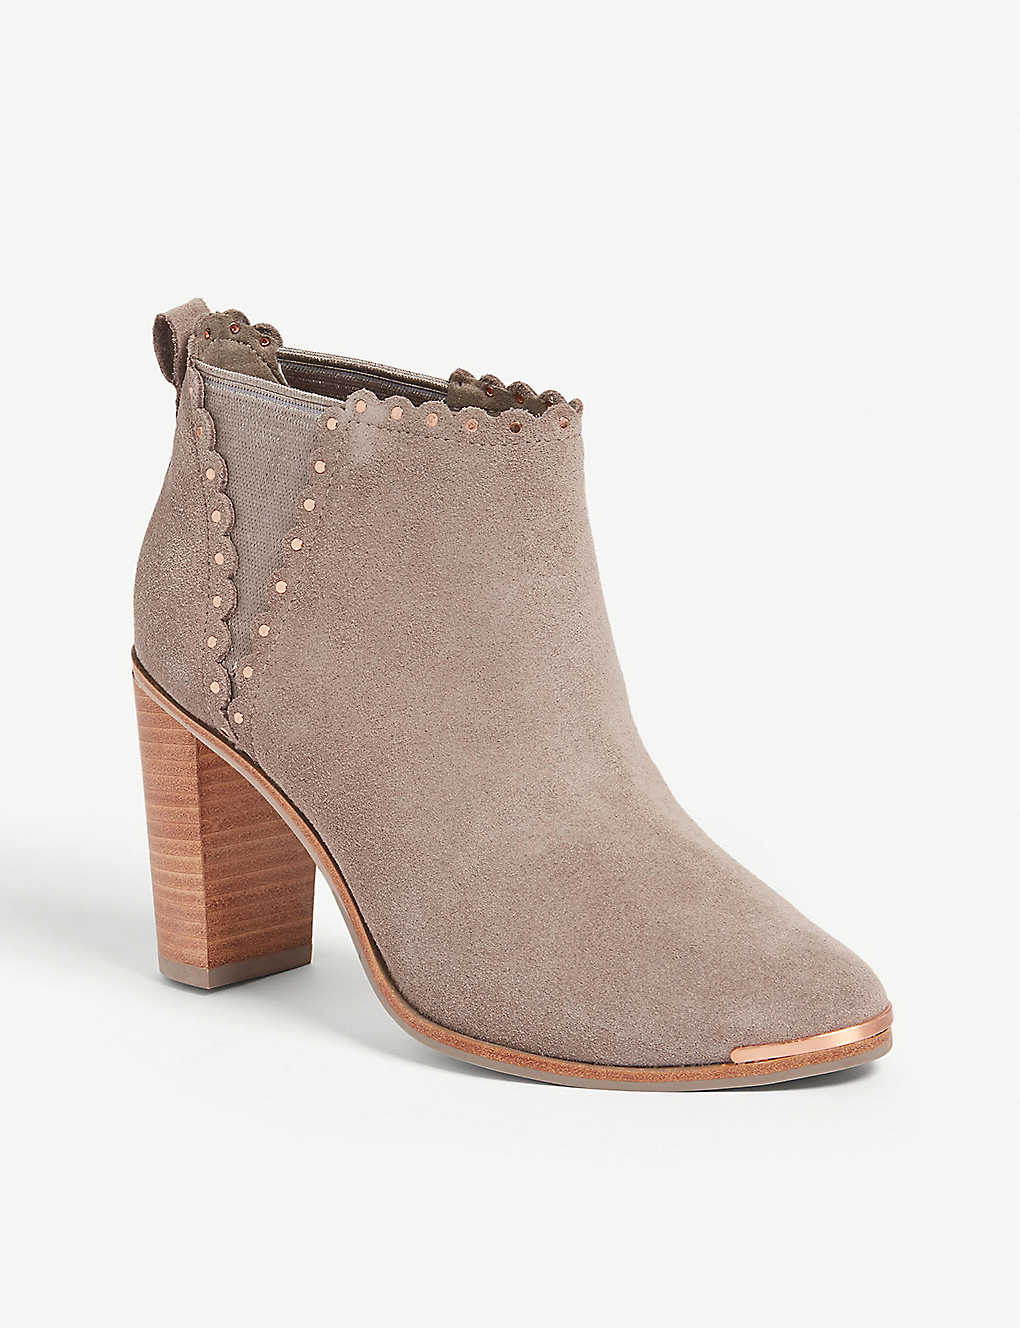 97deea242f01 ... Nurely scalloped suede ankle boots - Light grey ...